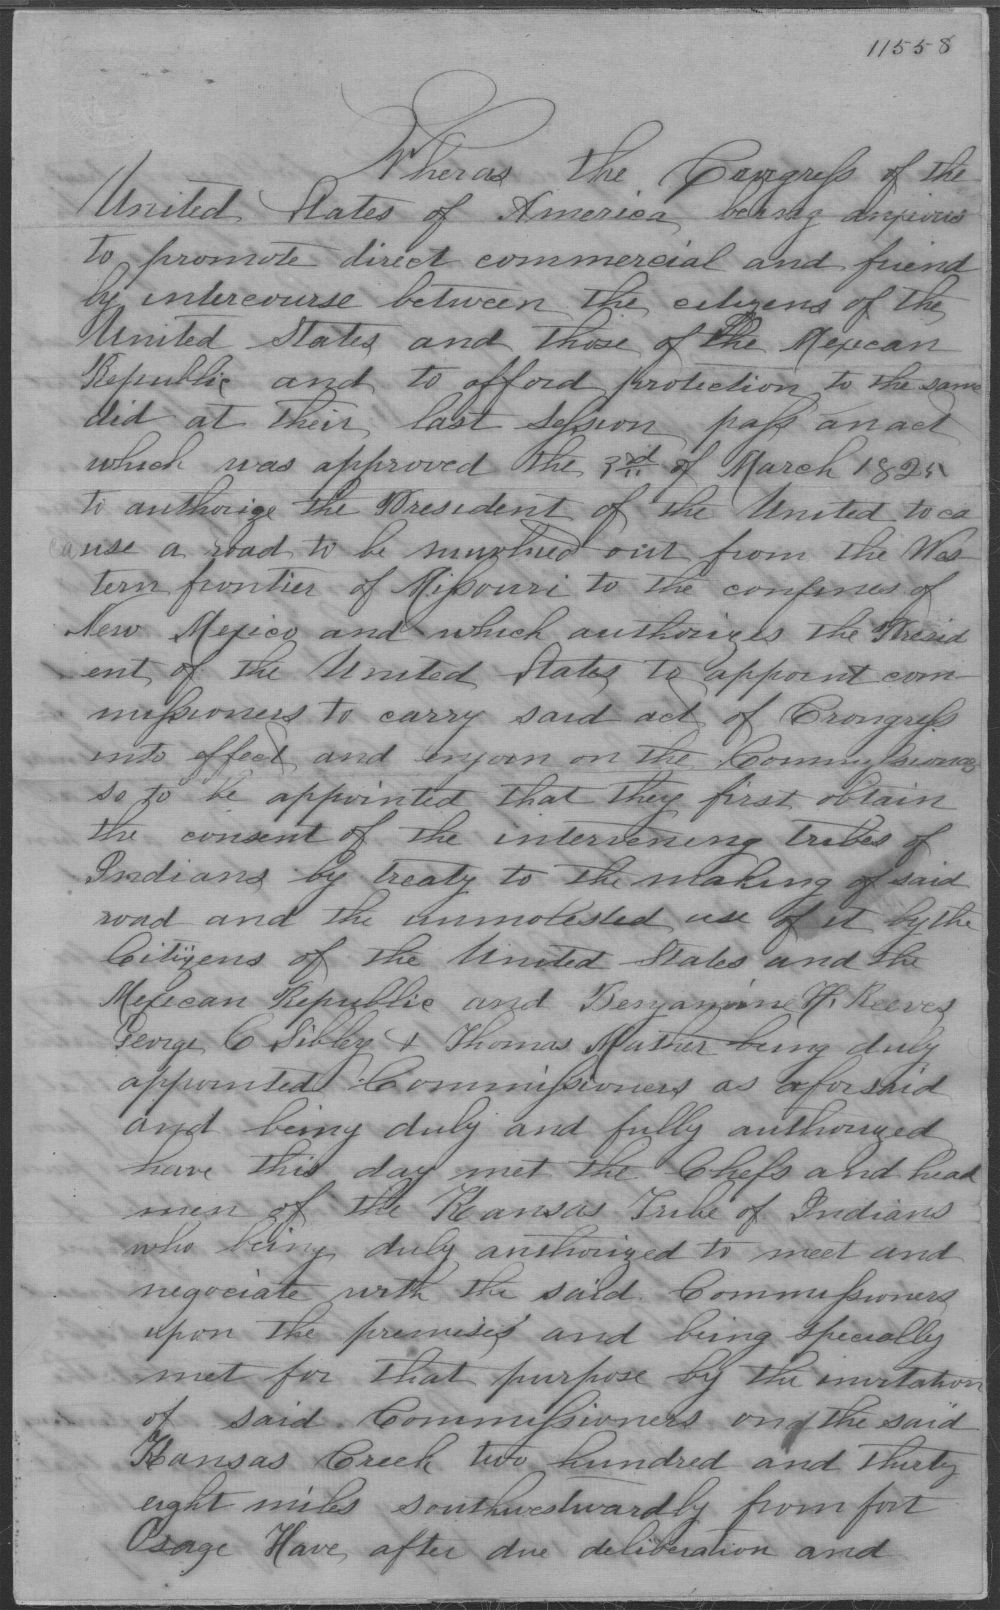 Treaty between the U.S. government and Kansa tribe - 1